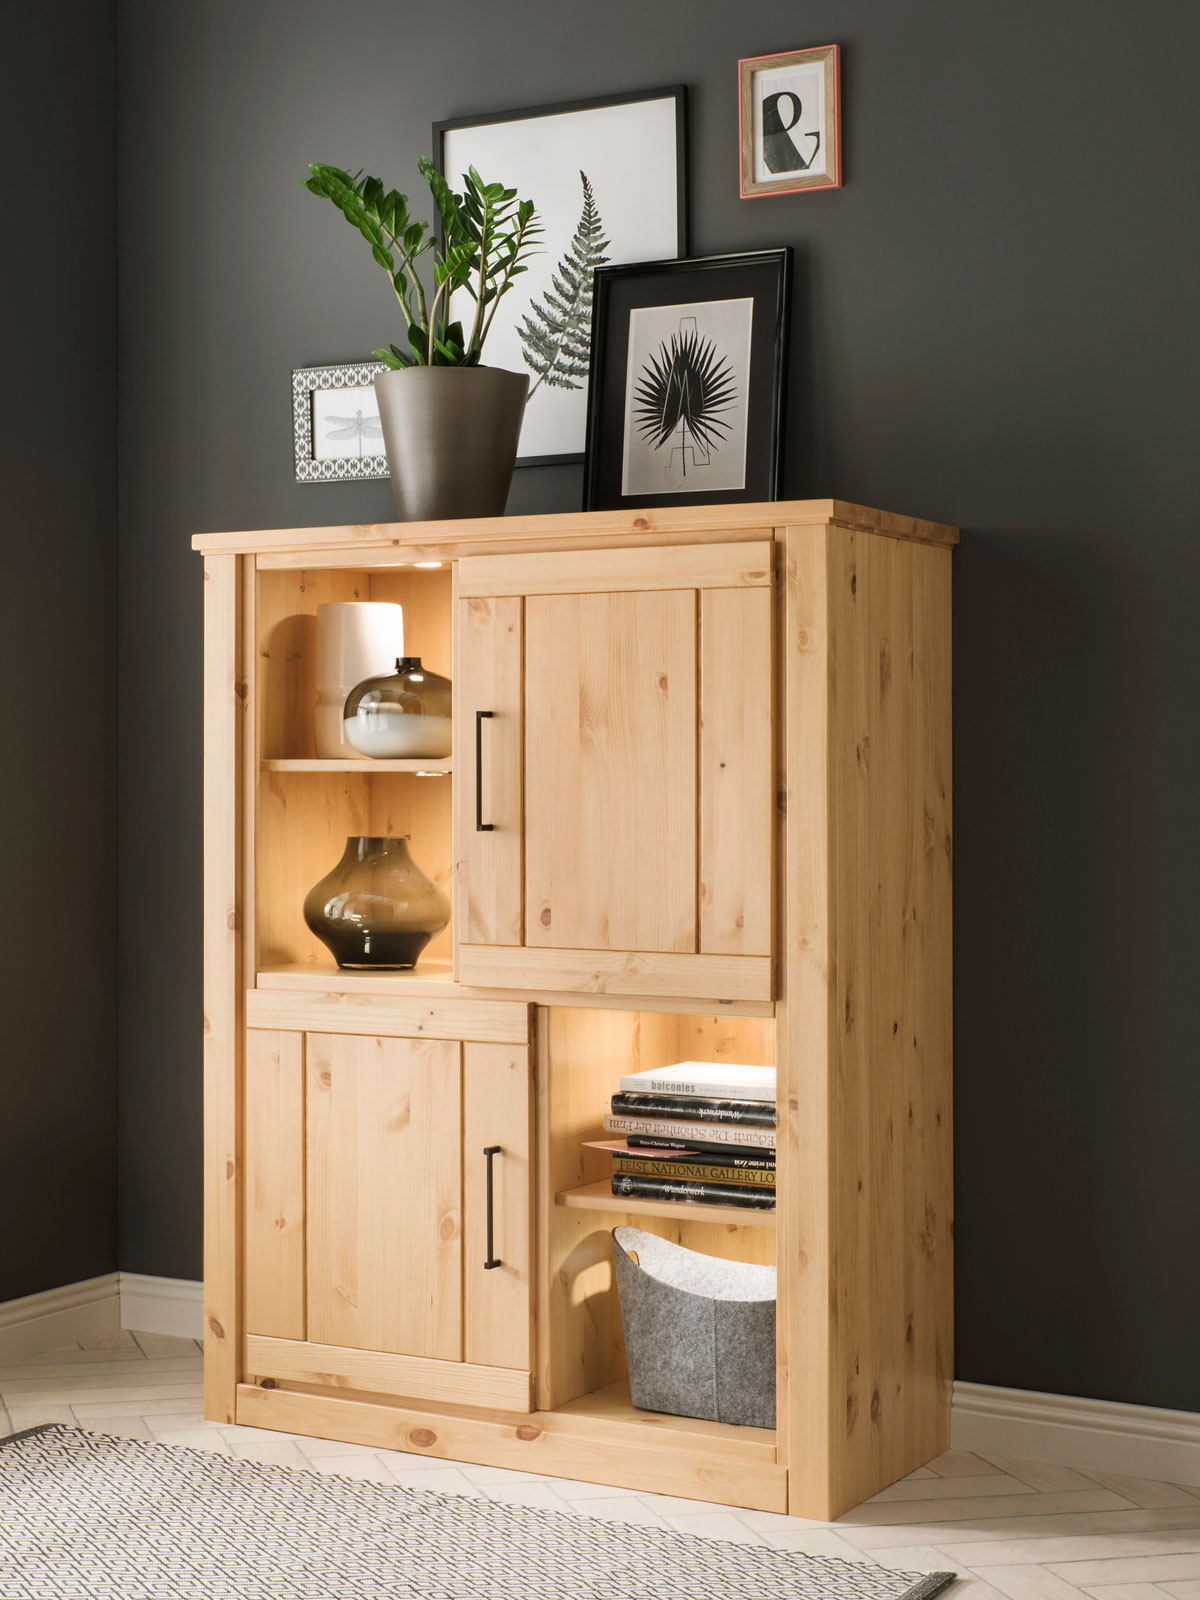 Highboard Kommode Highboard Hoch Kommode Verona 2 Türen 2 Regale Pinie Nordica Lackiert